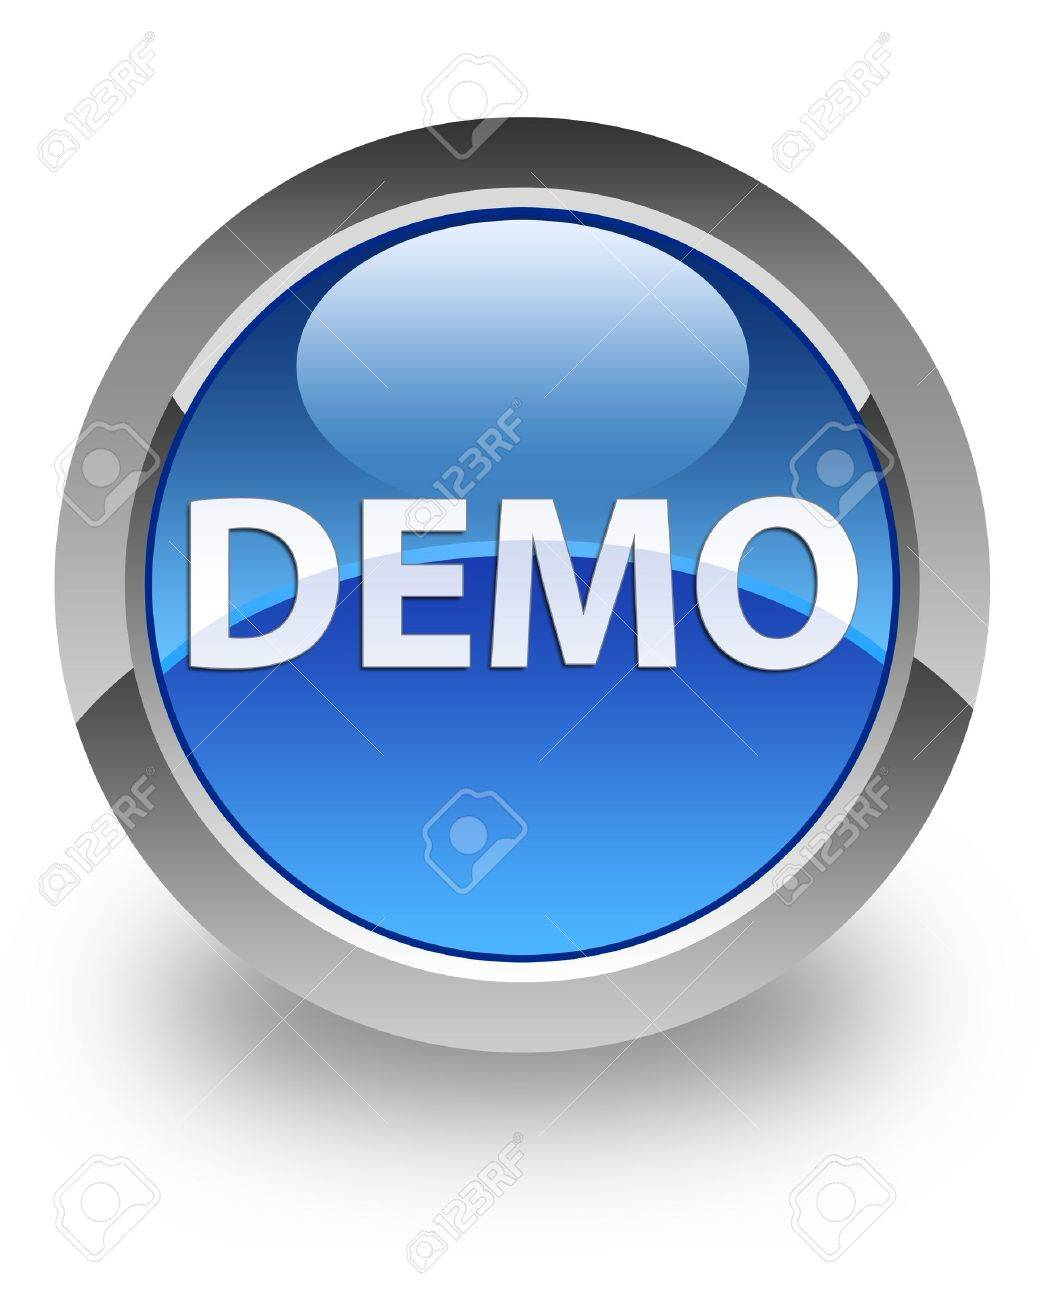 Demo icon on glossy blue round button Stock Photo - 15446212